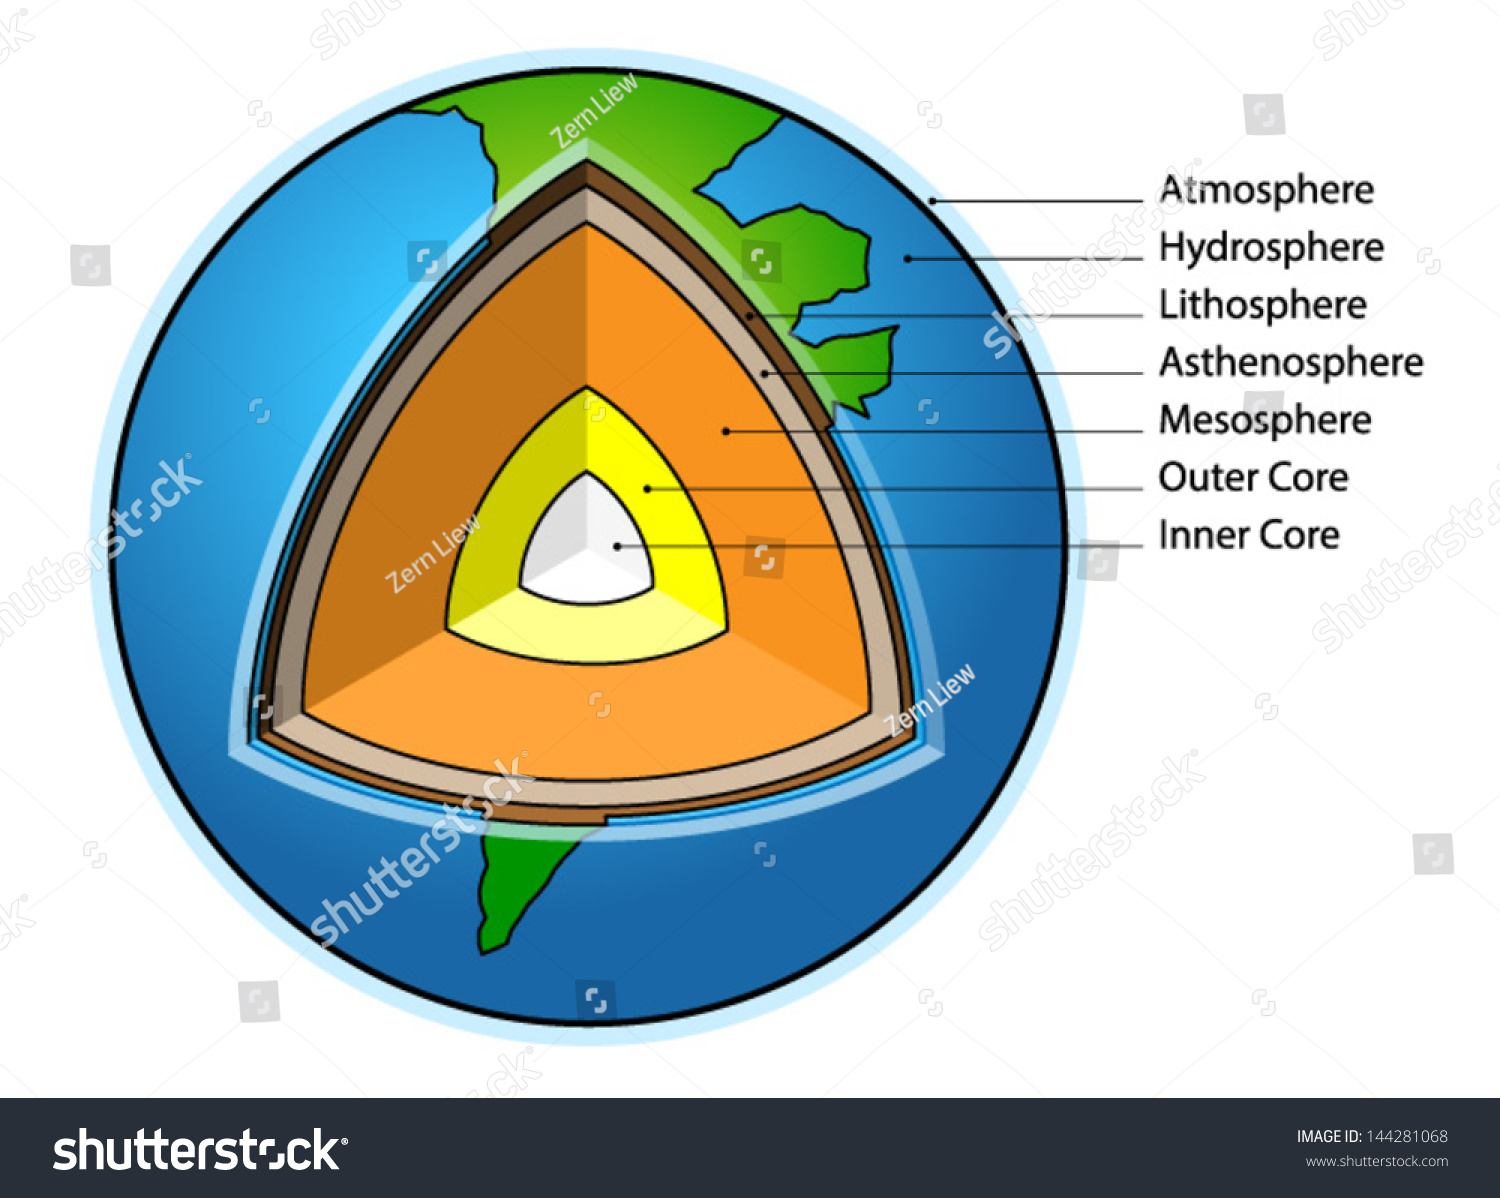 an analysis and geography of the planet earth There are more than 170 established impact craters on earth, including the   assignment of damage within each geographic cell in the monte carlo analysis.